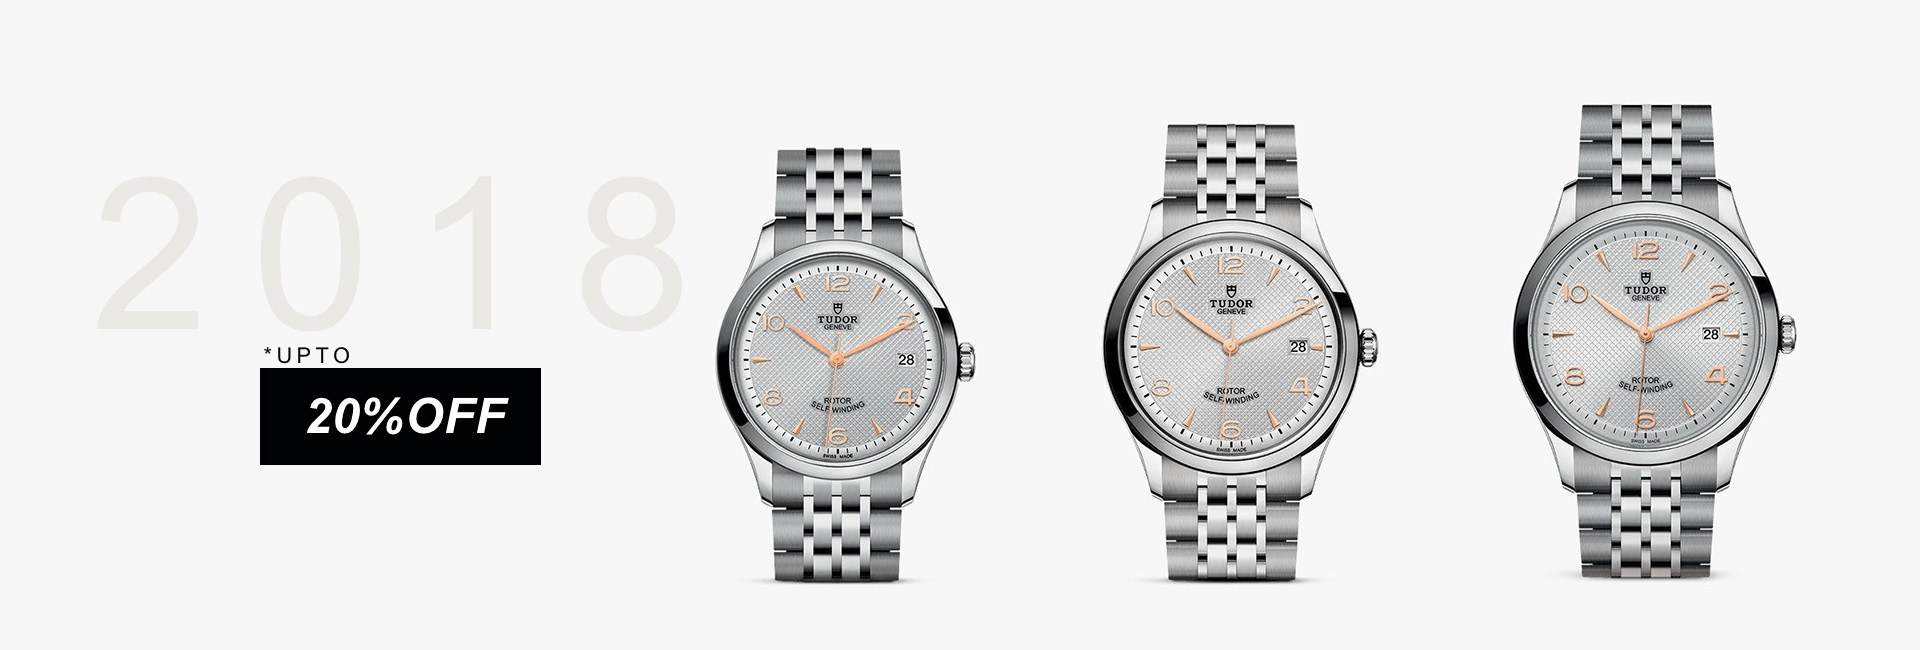 Buy First Copy Replica Watches Online